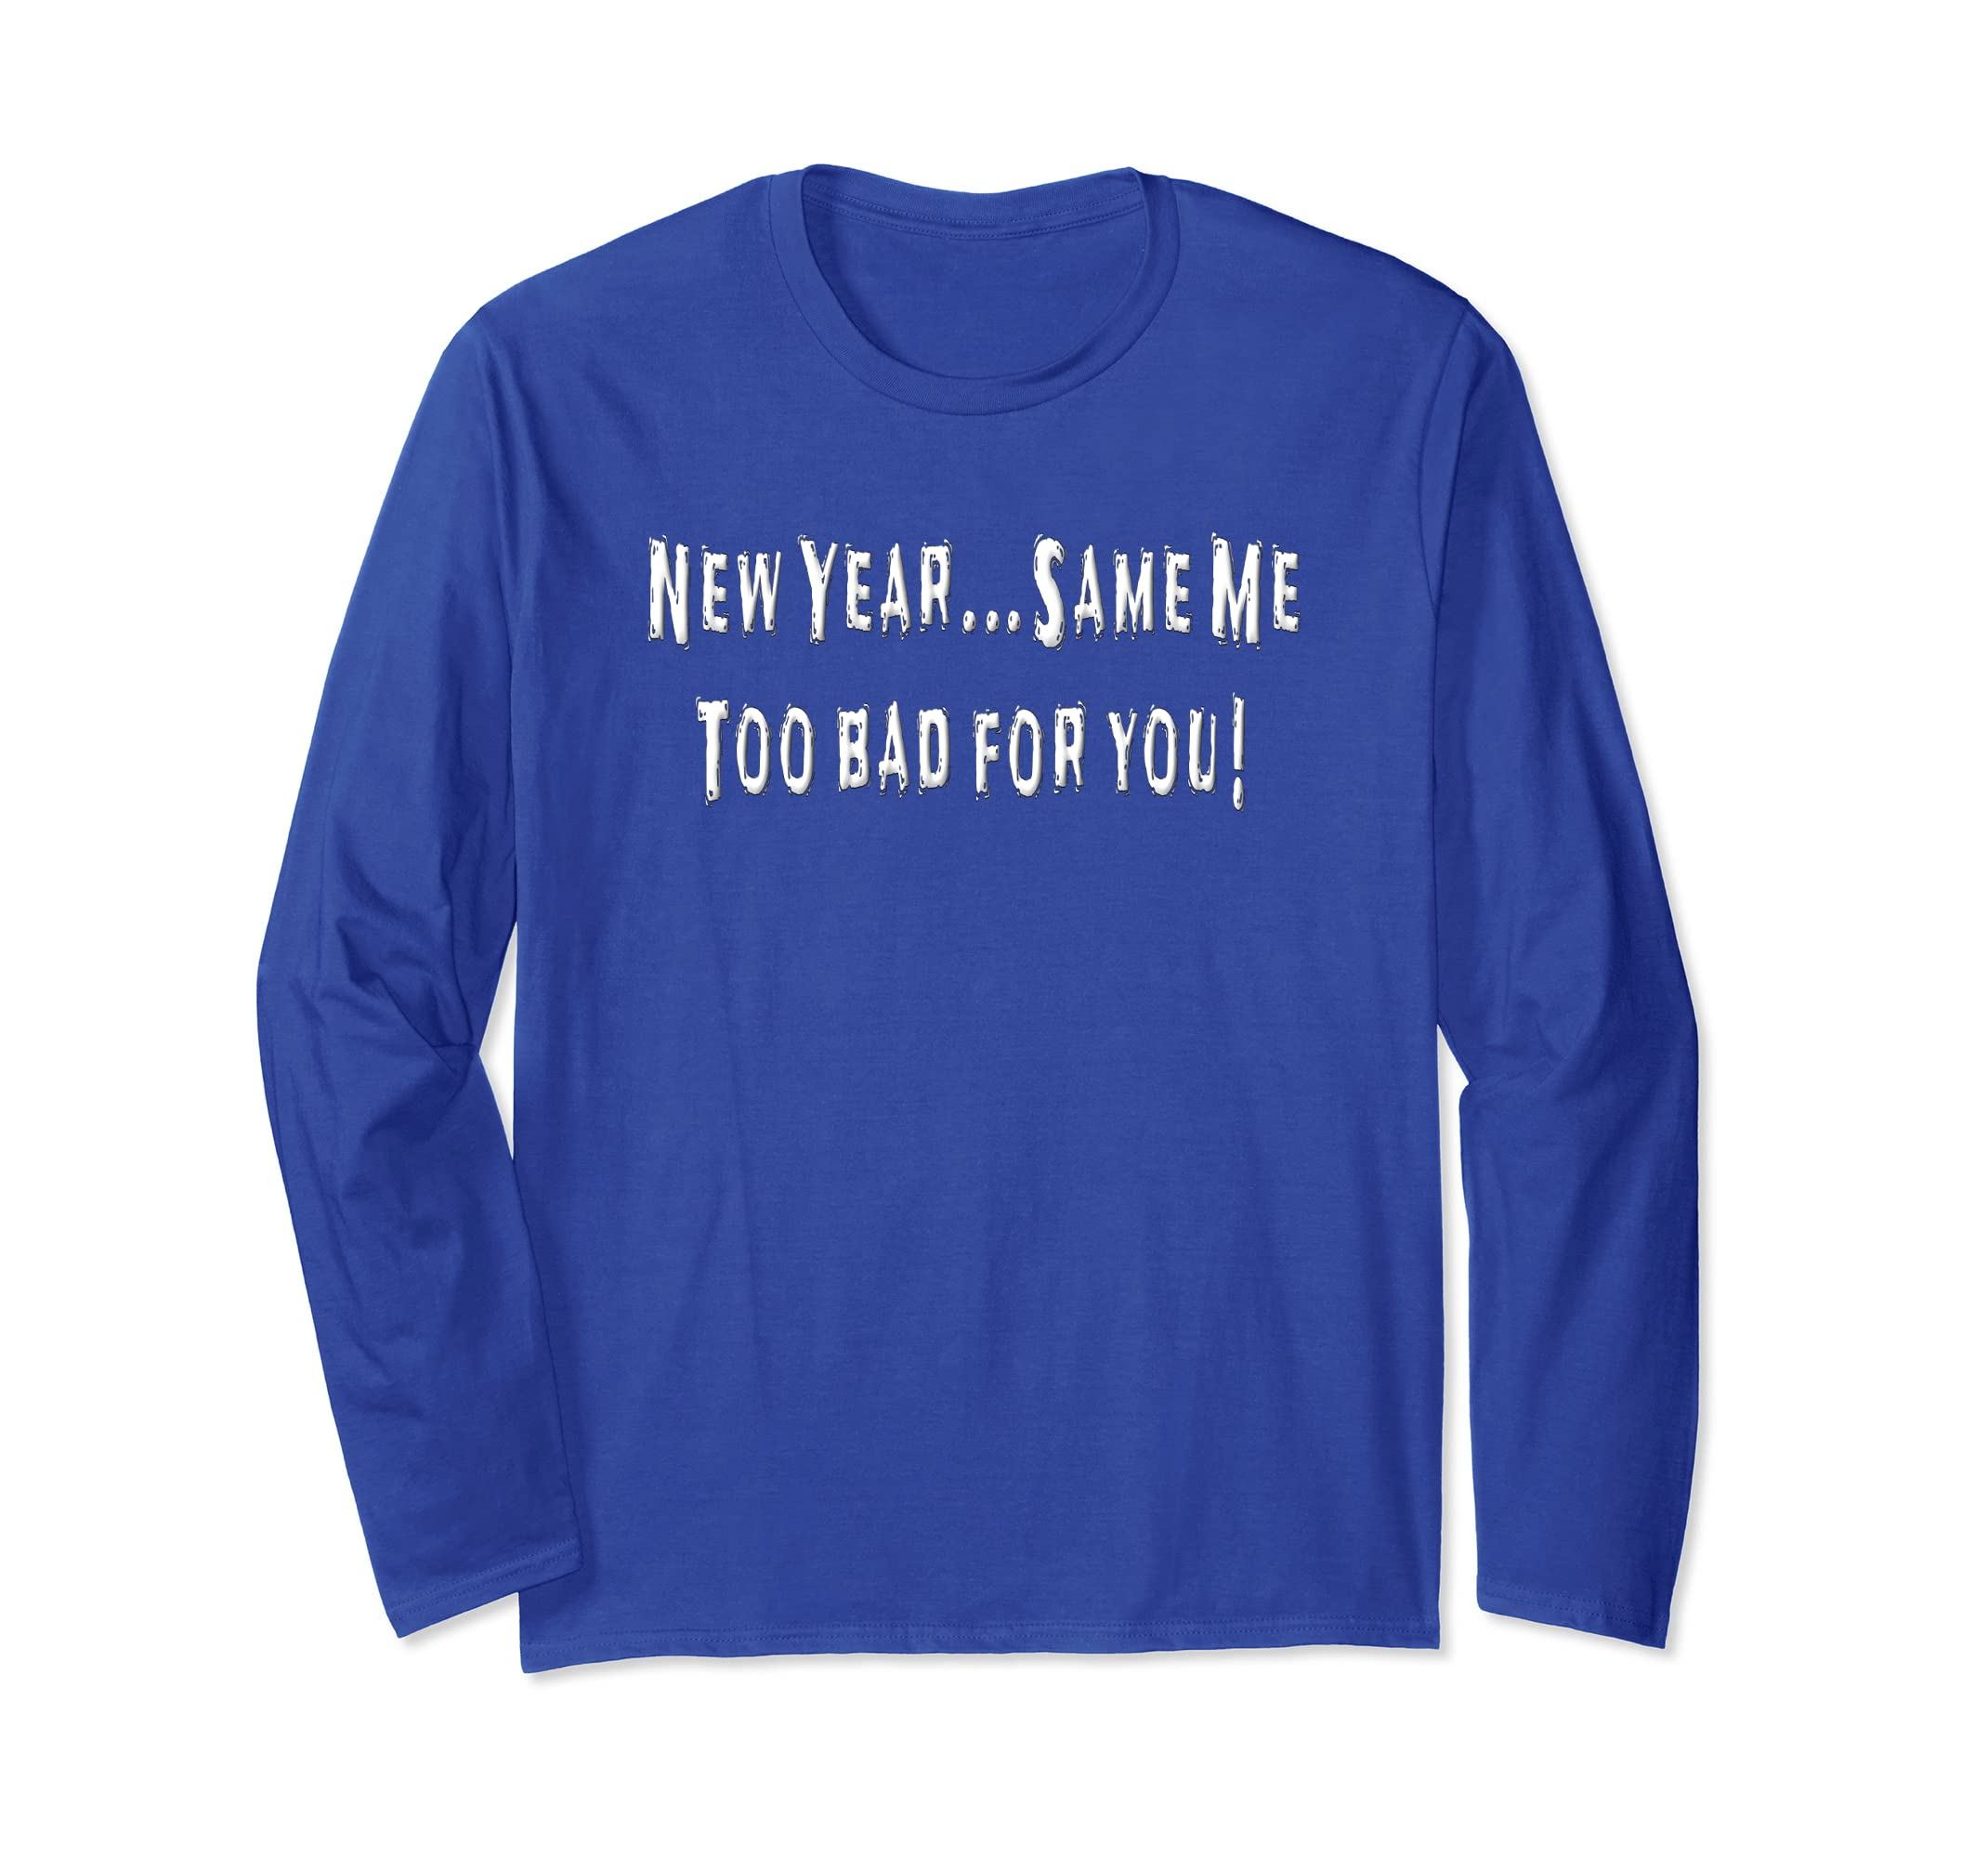 Amazon.com: New Year Same Me Shirt Long Sleeve Funny New ...